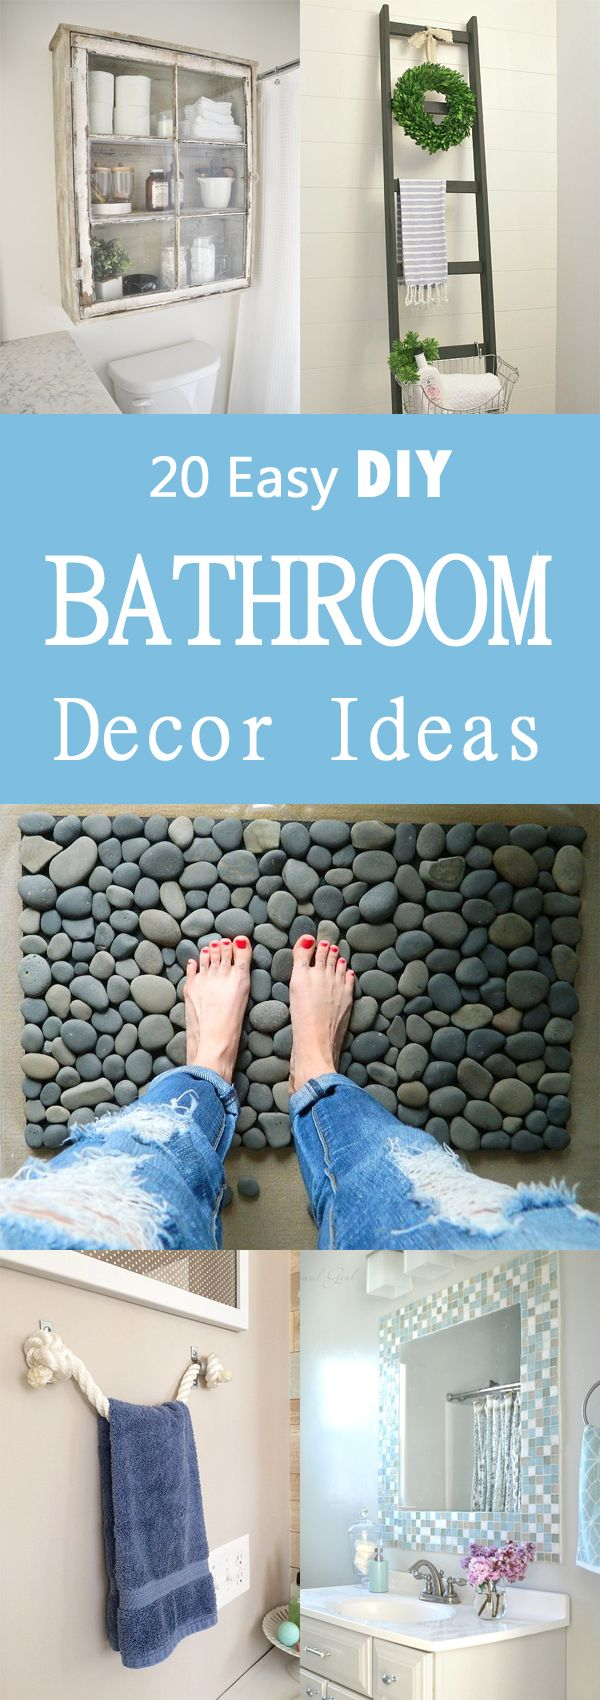 Bathroom Decorating Ideas Diy Pinterest 50 best diy home decor ideas images on pinterest | pinterest diy